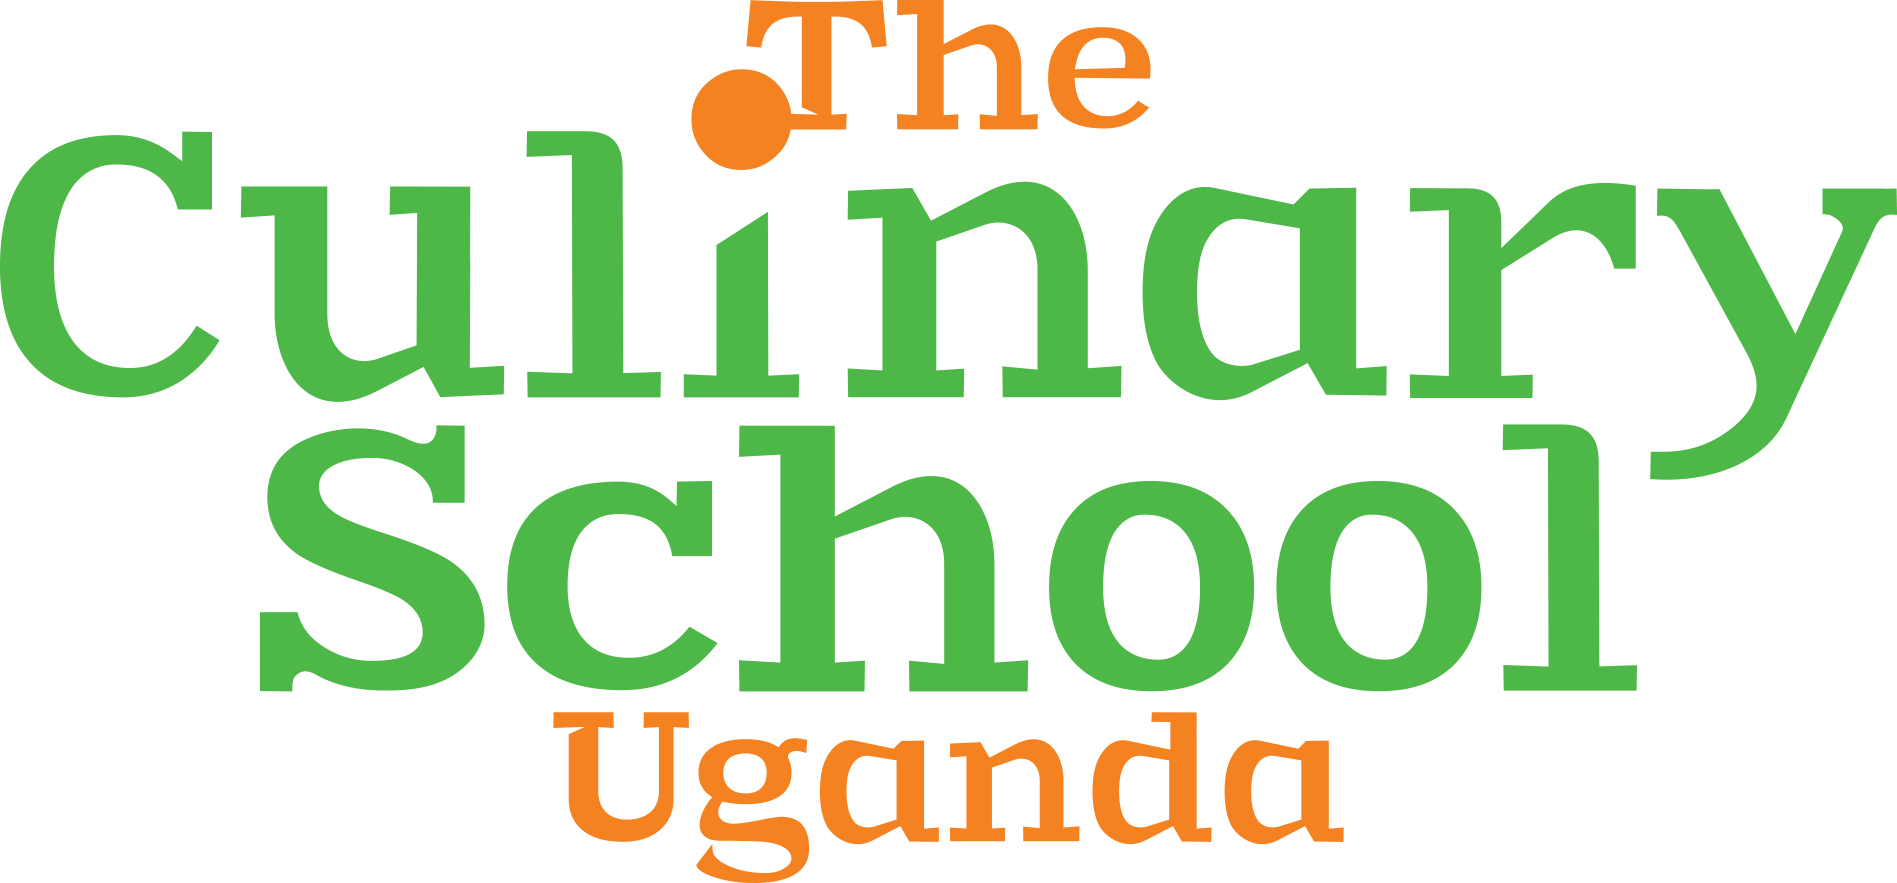 The Cooking School School Uganda